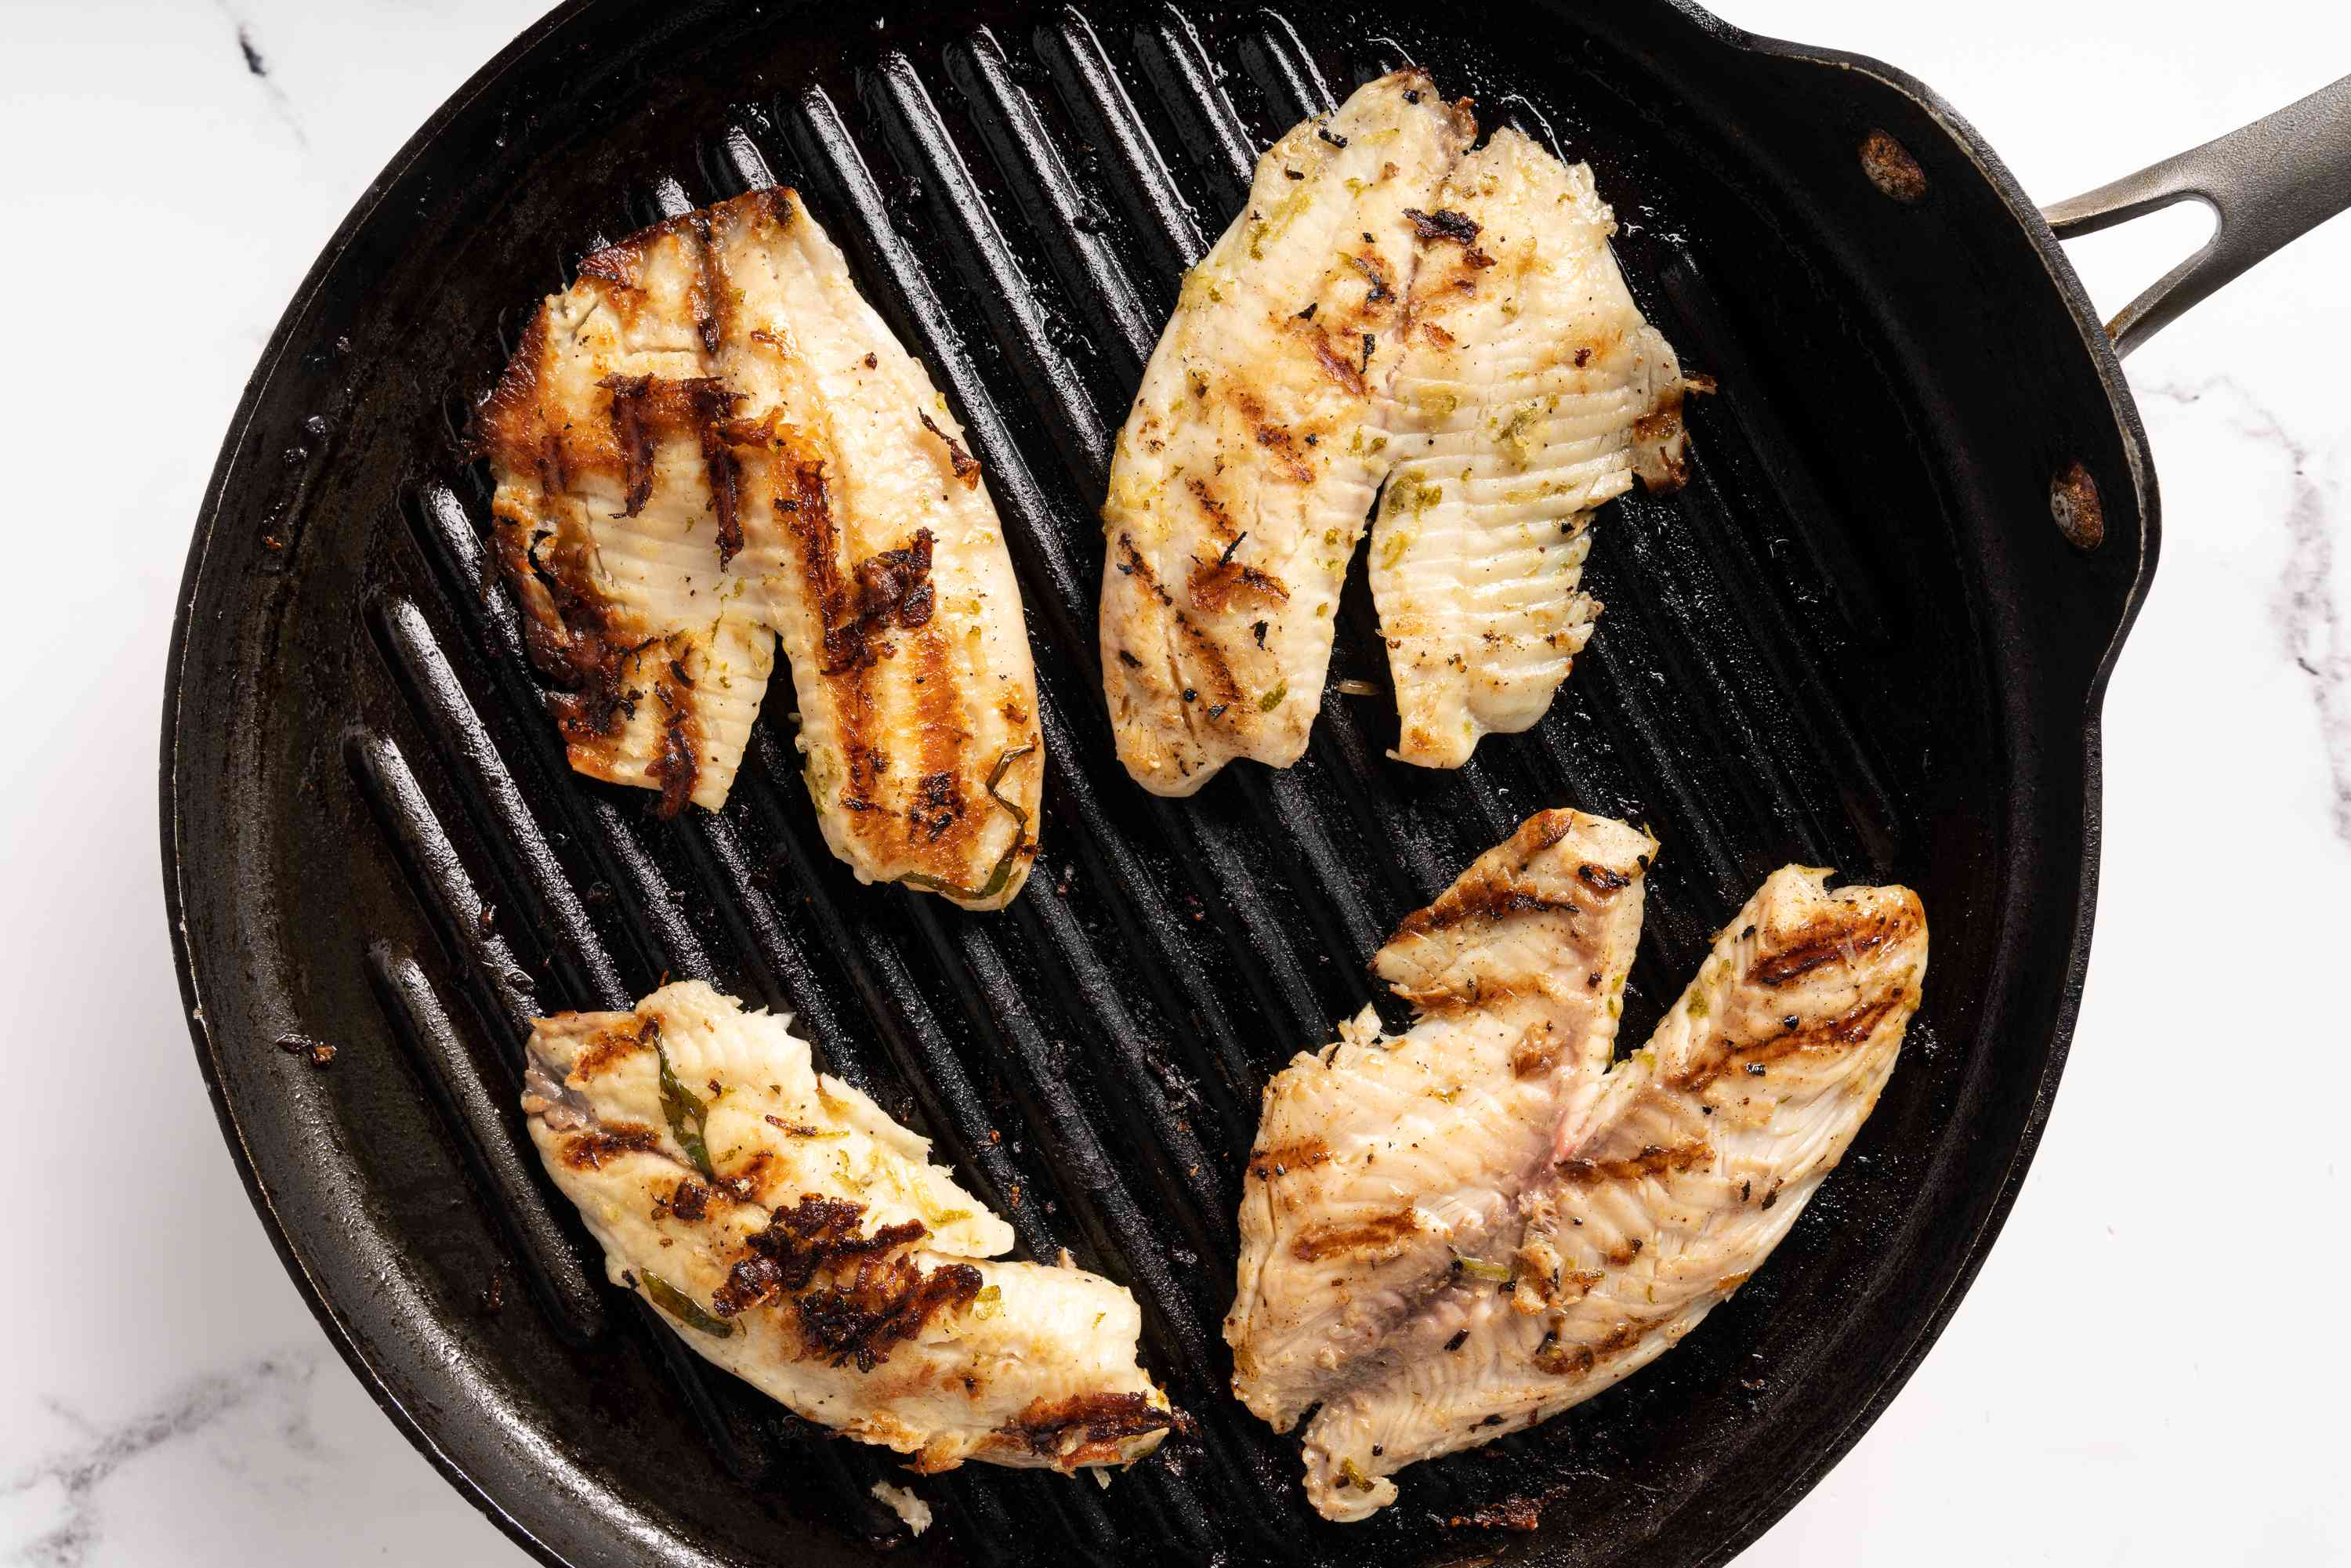 tilapia cooking on a grill pan